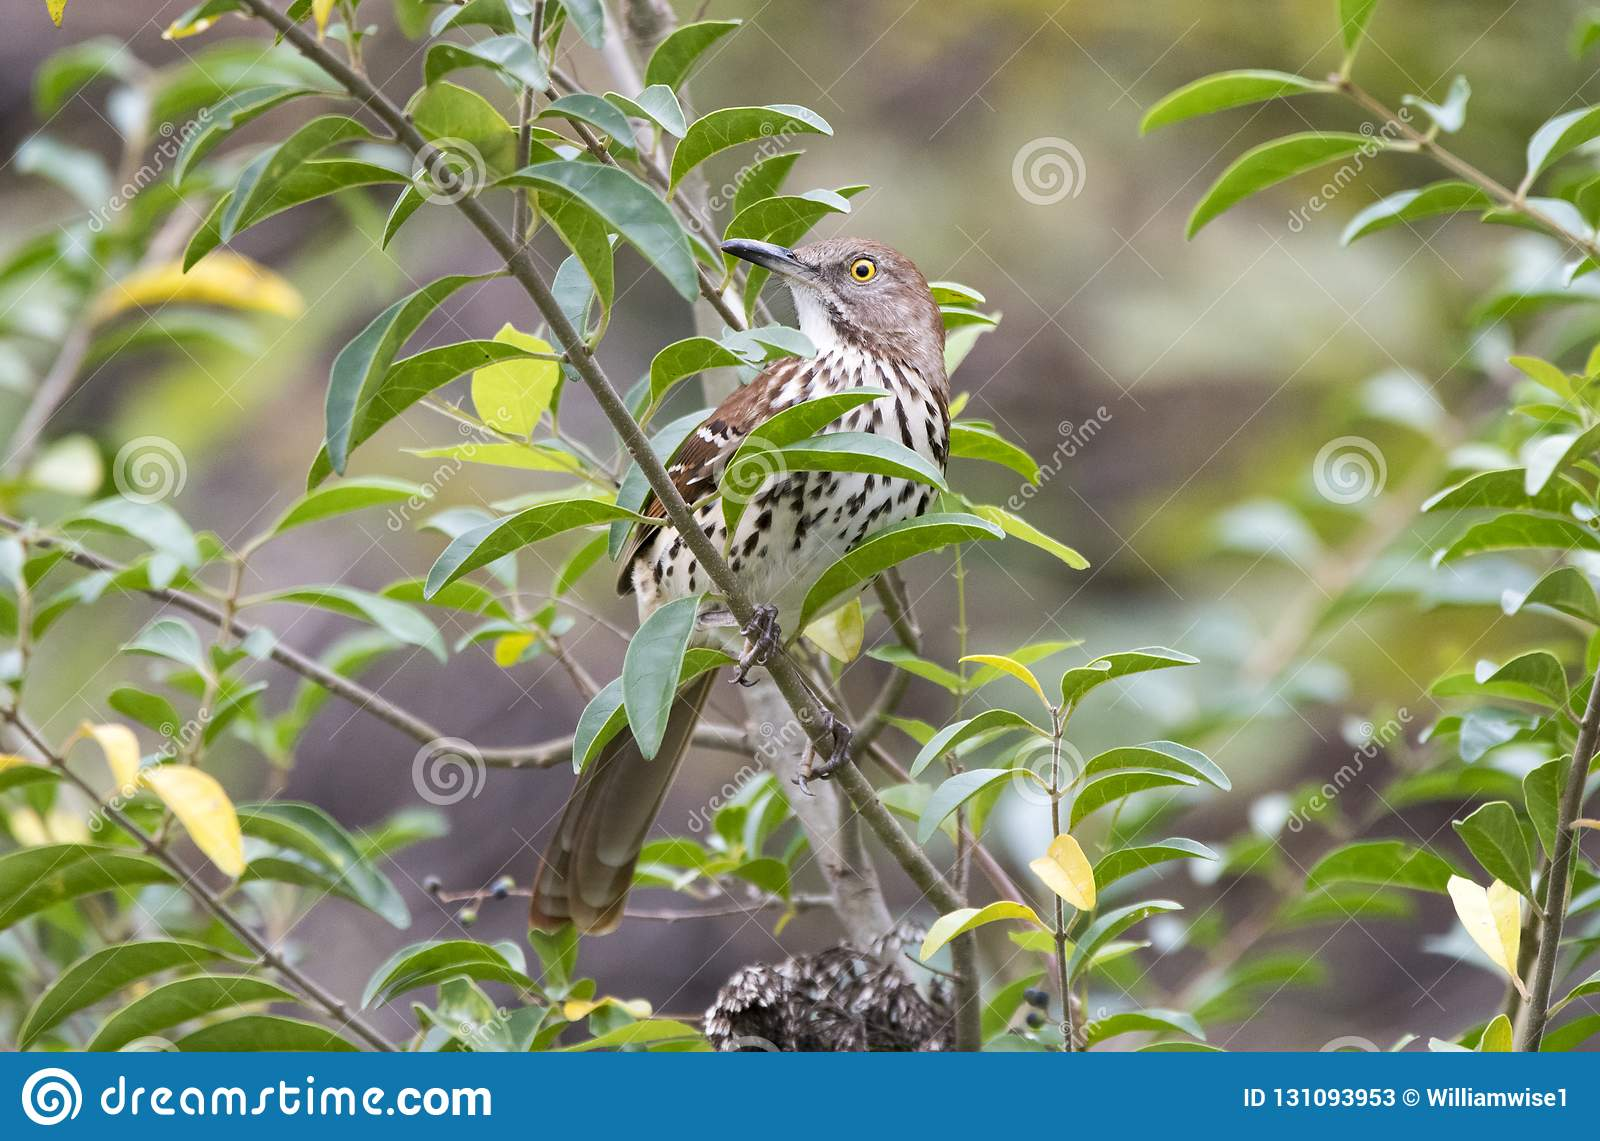 Brown Thrasher Georgia State Bird Stock Image